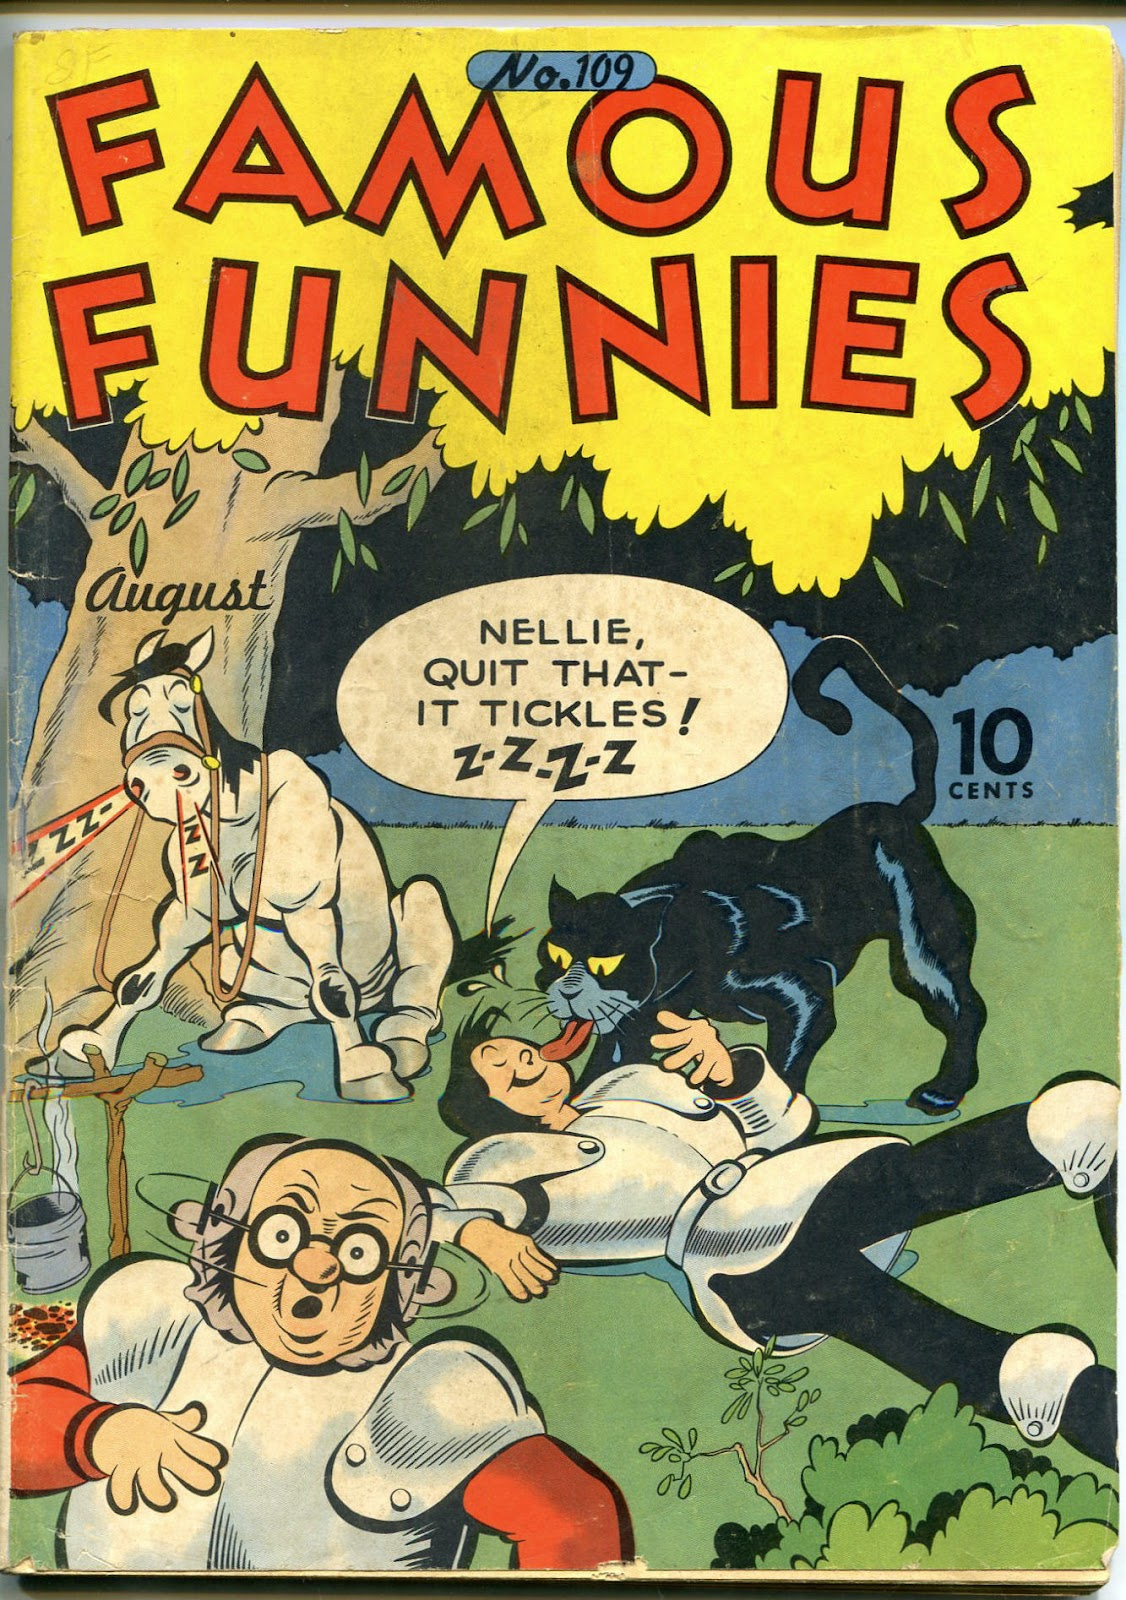 Read online Famous Funnies comic -  Issue #109 - 1